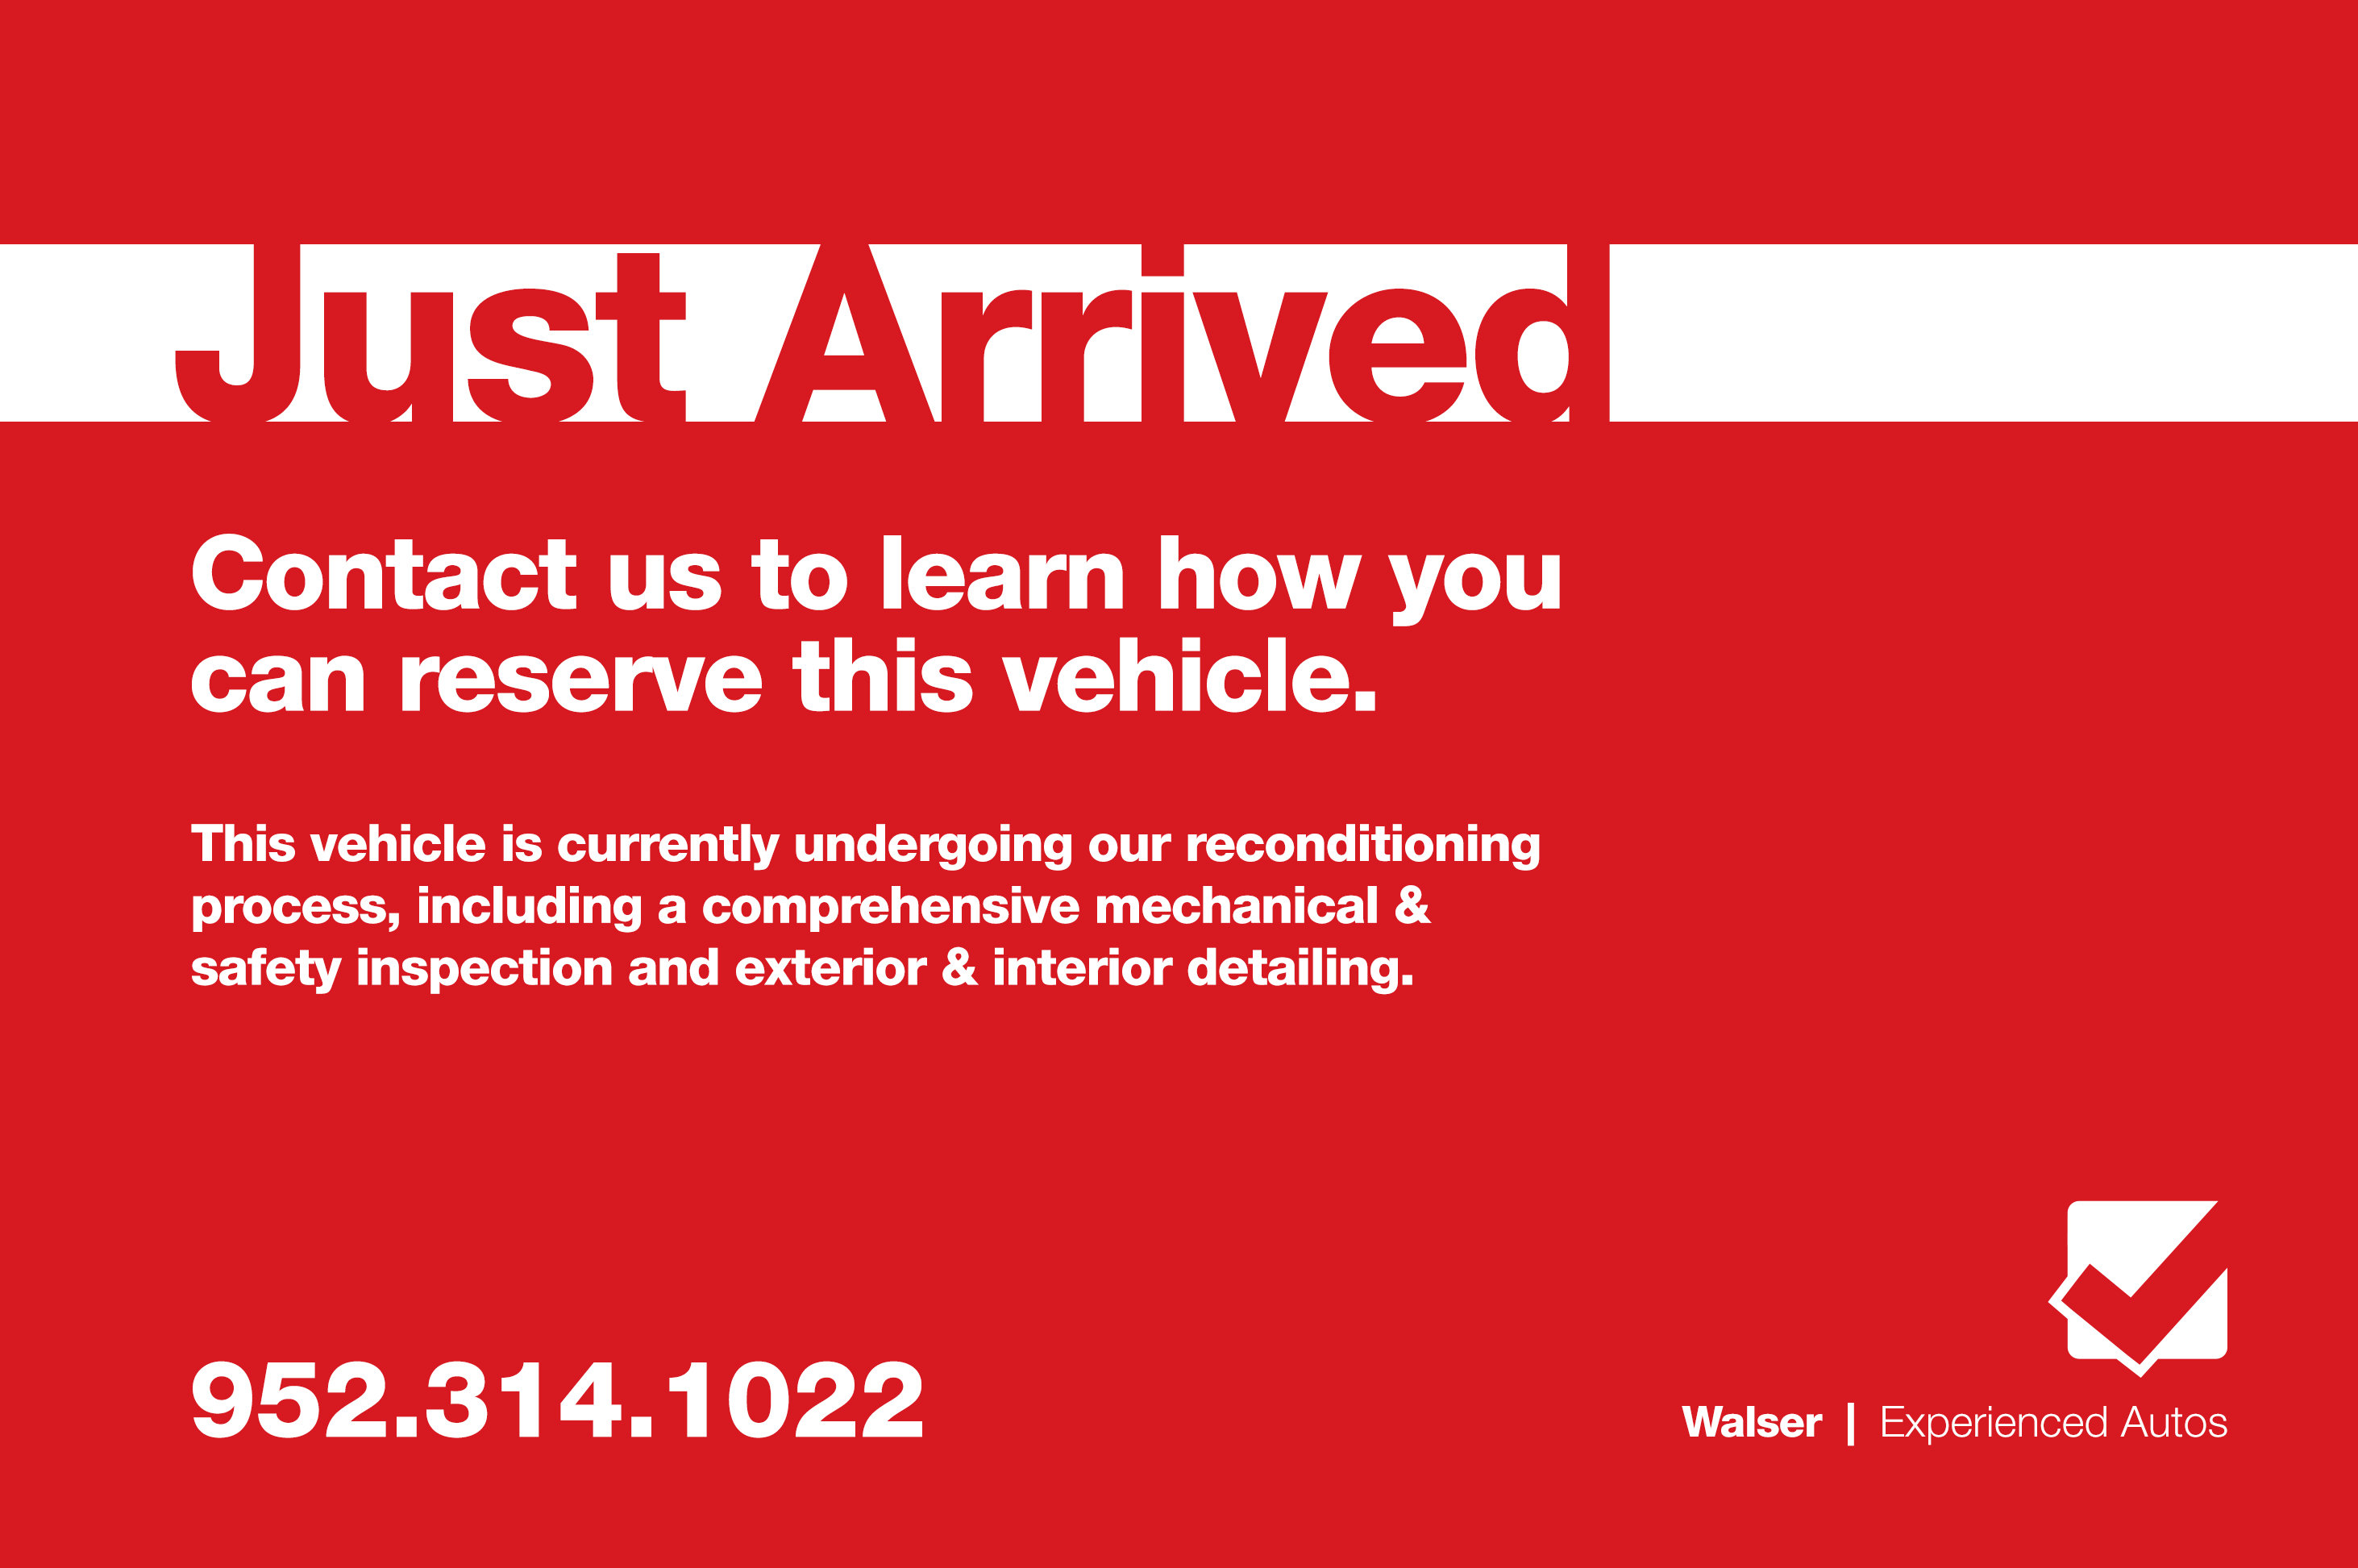 Used 2011 Dodge Durango Express with VIN 1D4RE2GG3BC667799 for sale in Burnsville, Minnesota